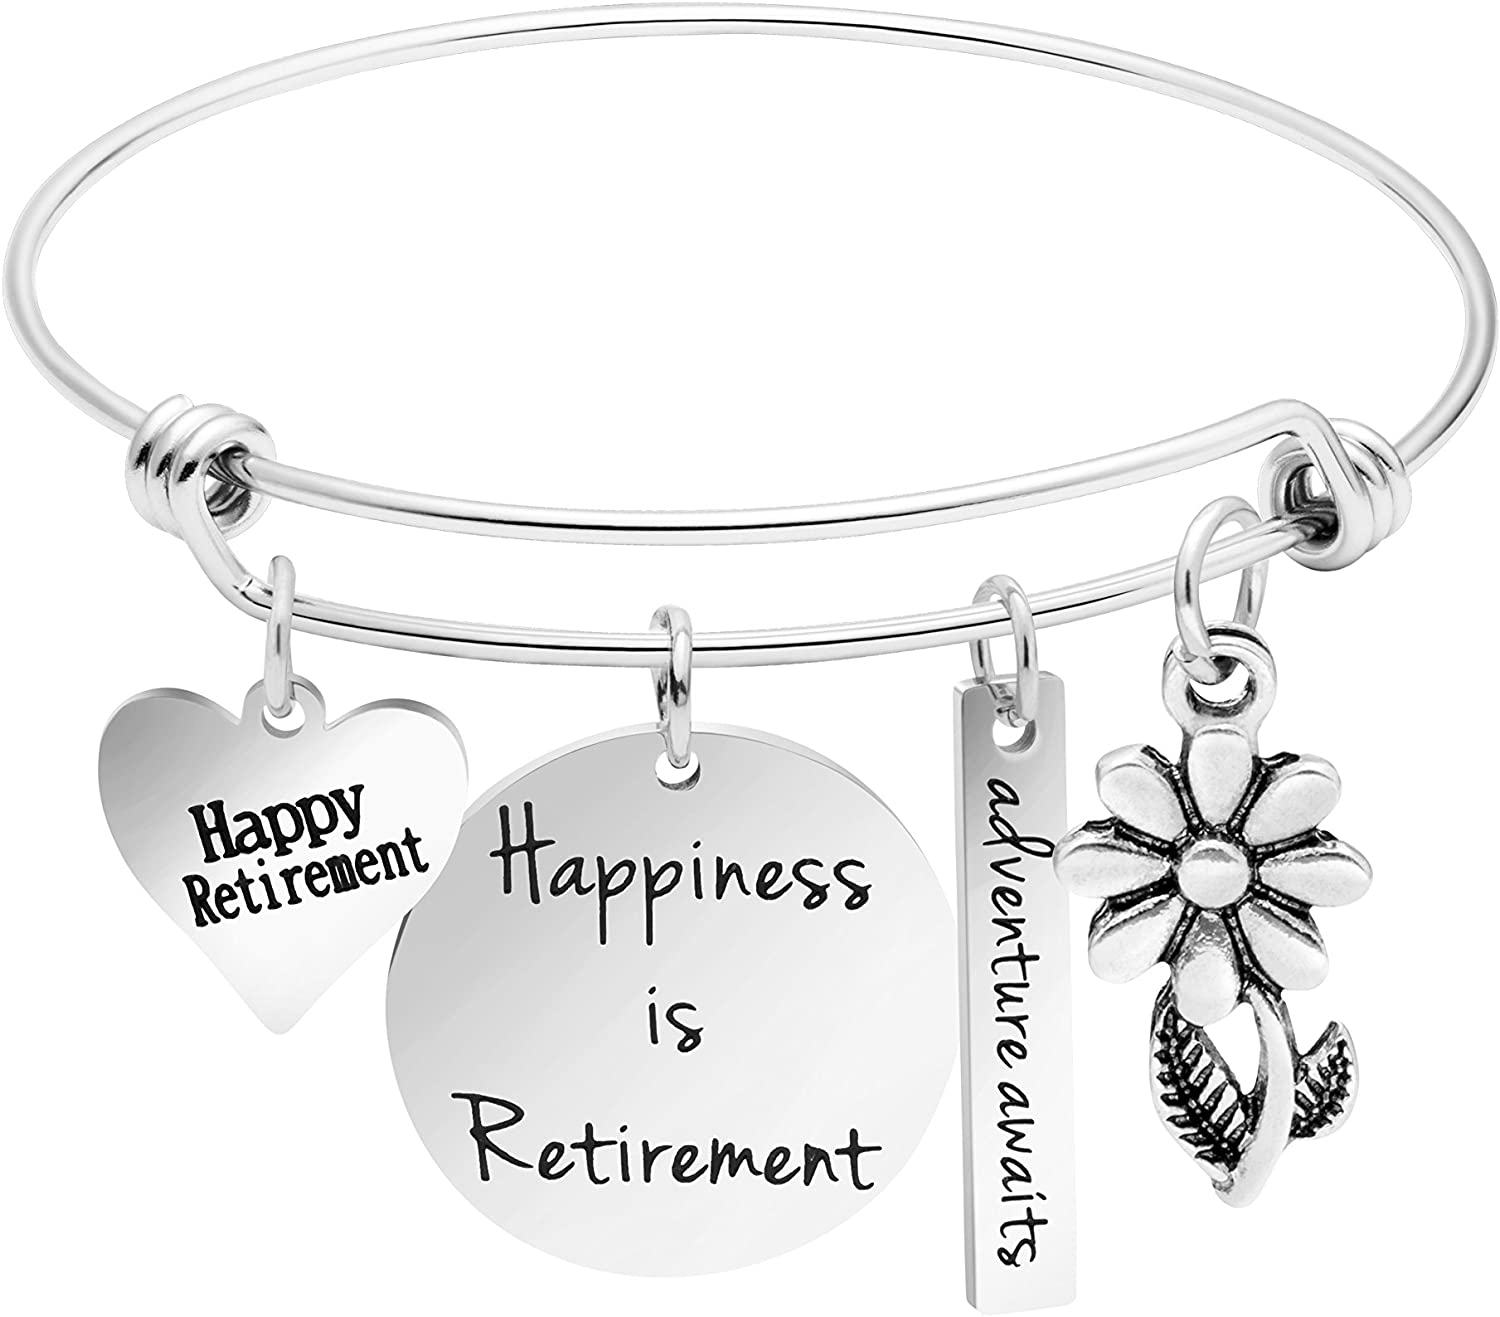 Awegift Happiness is Retirement Bracelet Jewelry Gifts for Women Stainless Steel Charm Bangle